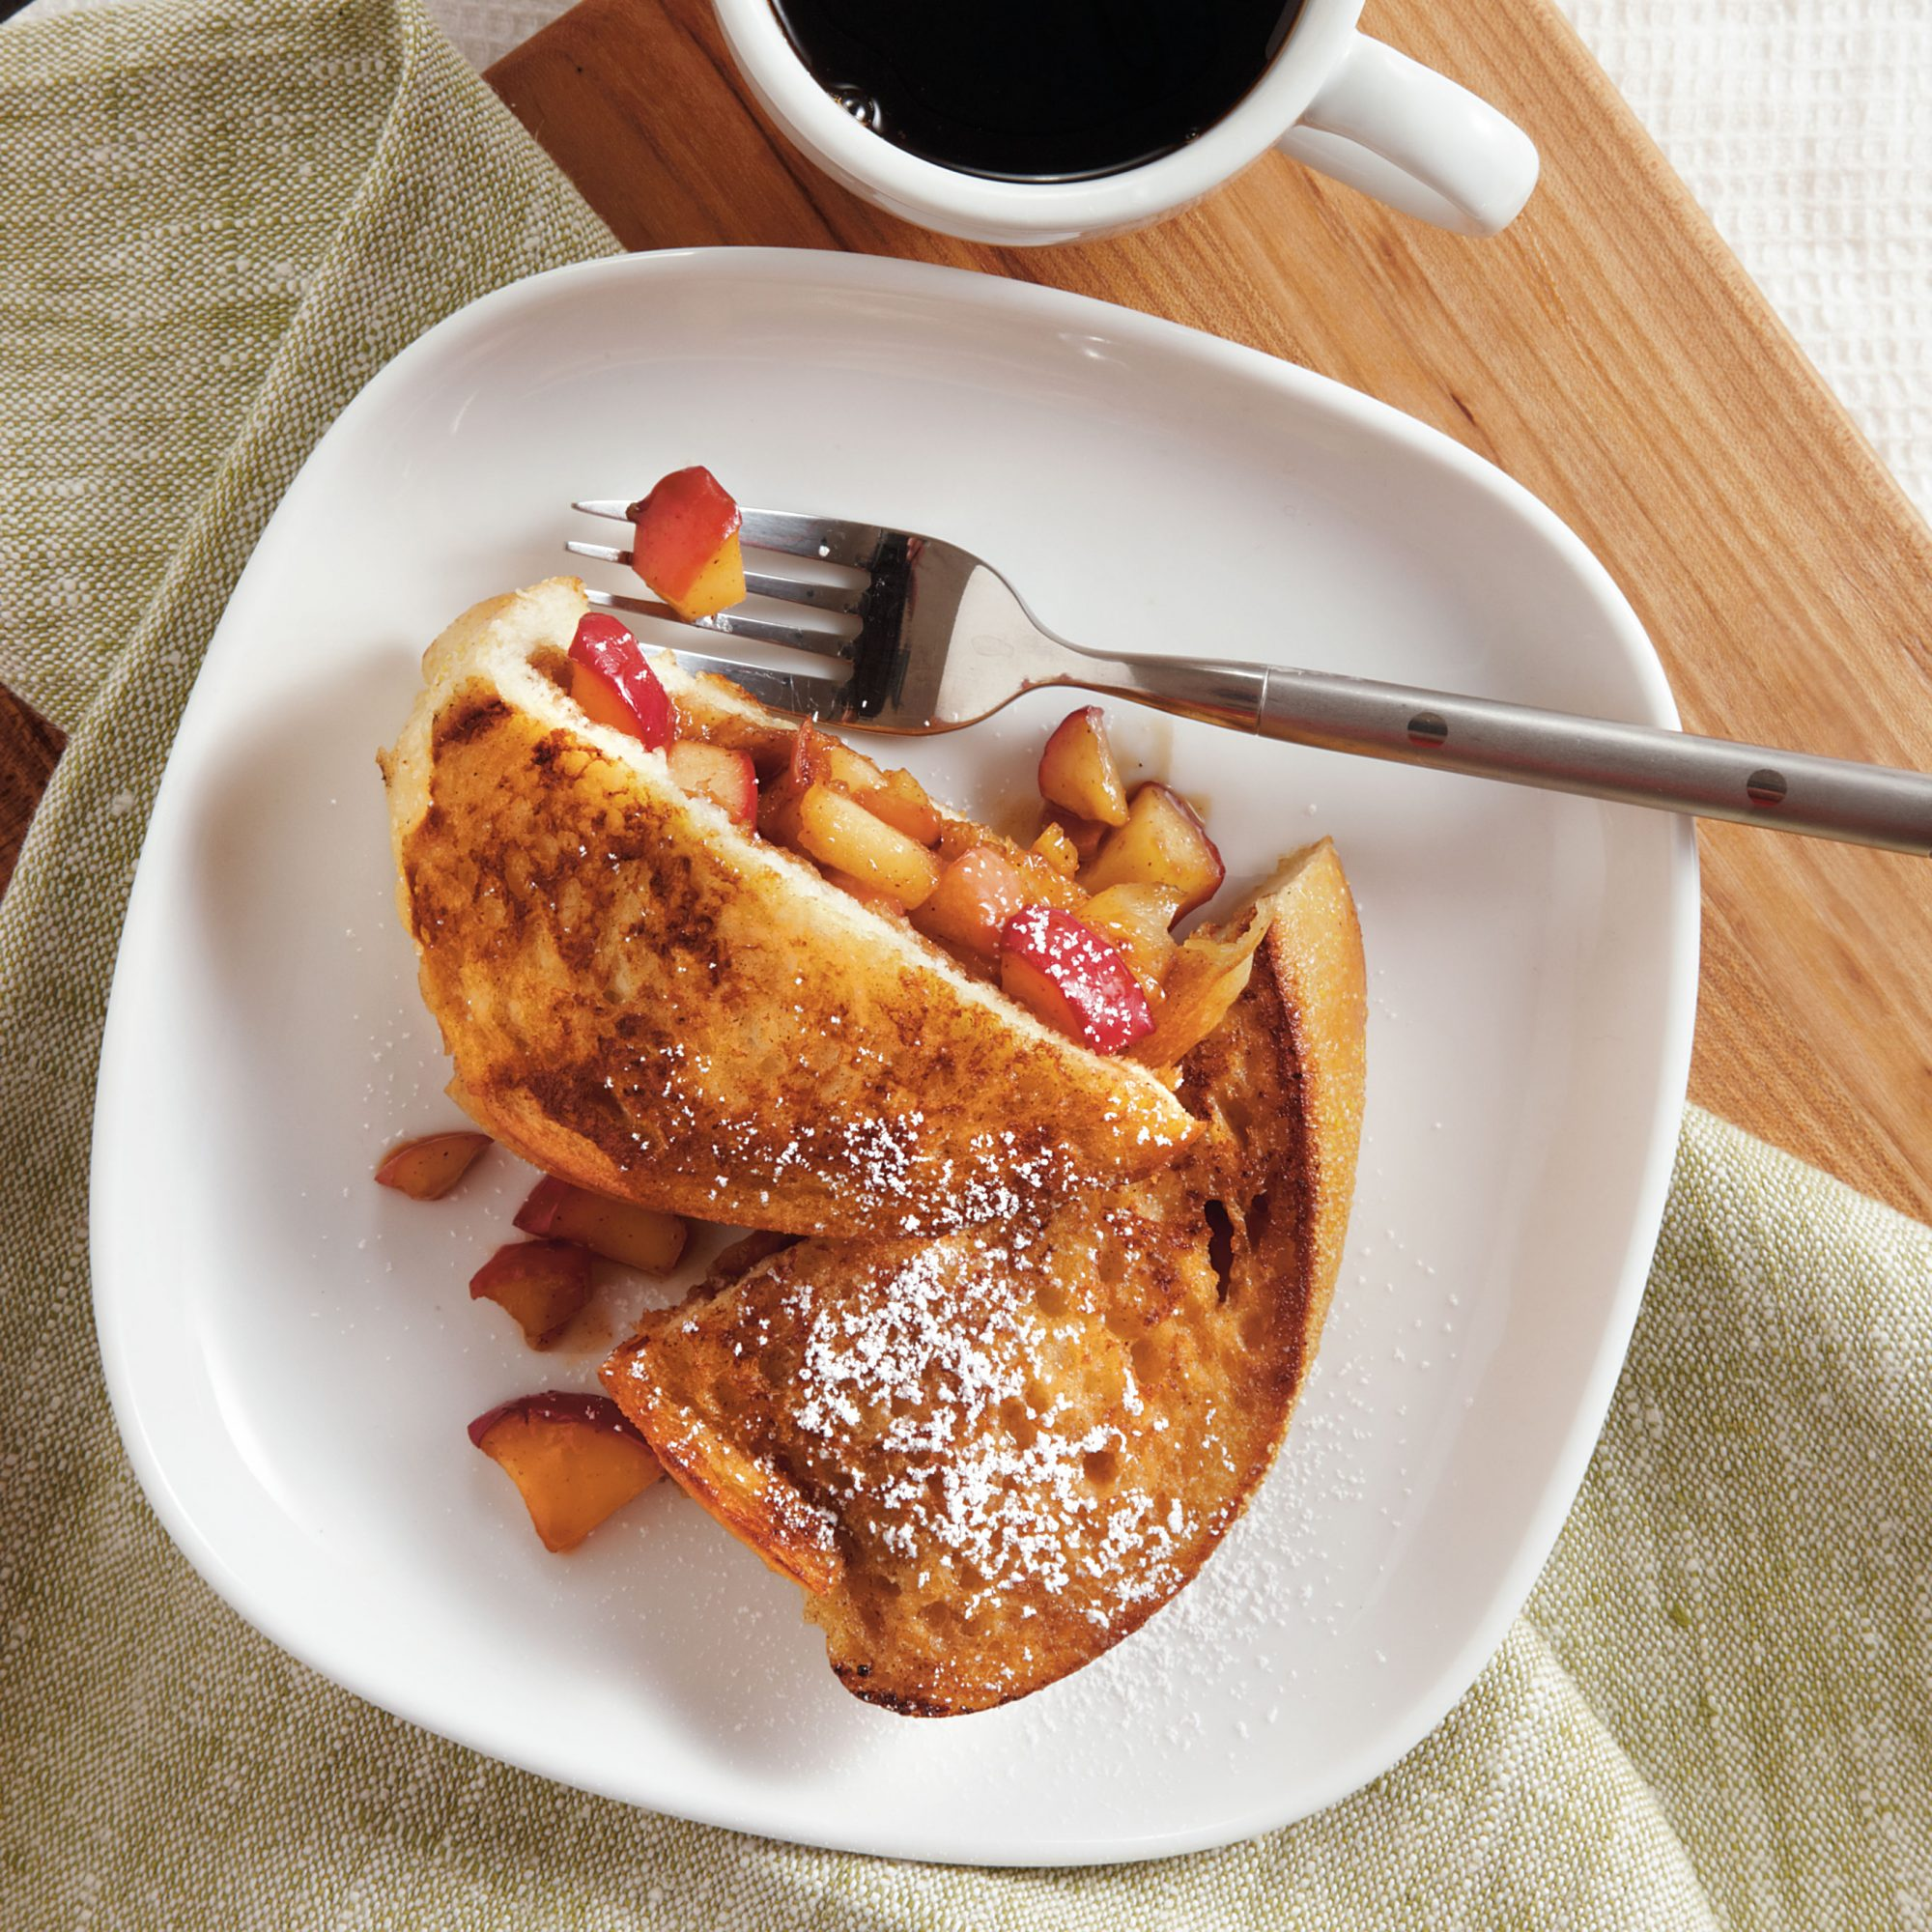 Cinnamon-Apple Stuffed French Toast Recipe